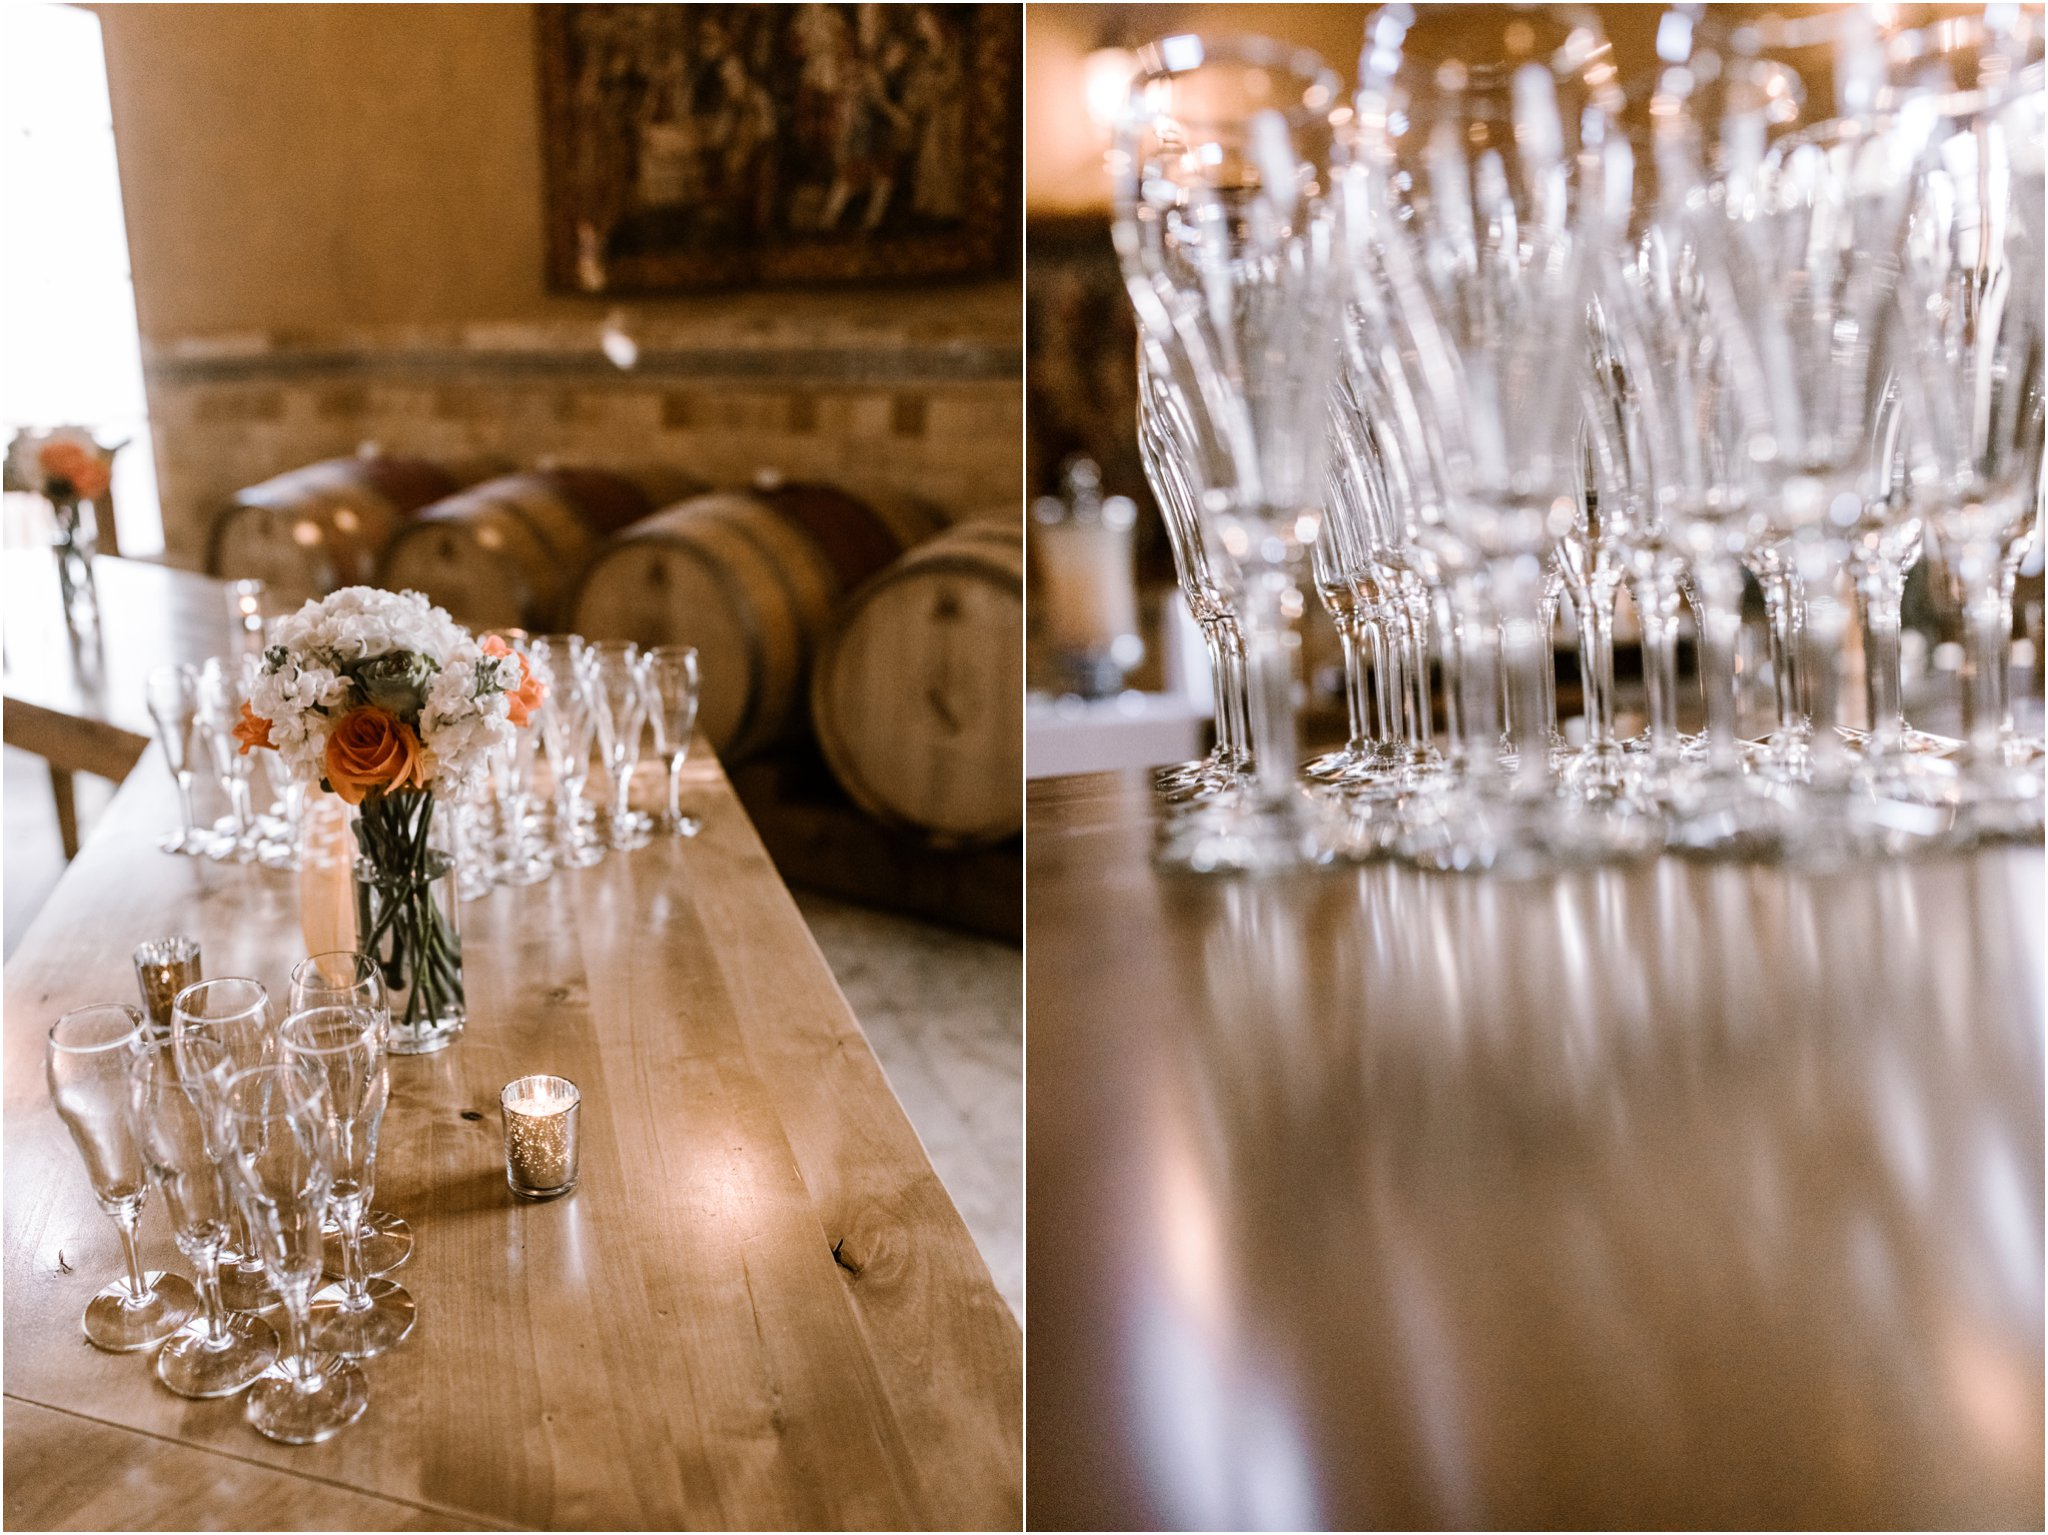 0221Casa Rodena Winery Wedding, Inn and Spa at Loretto wedding, Santa Fe wedding photographers, blue rose photography